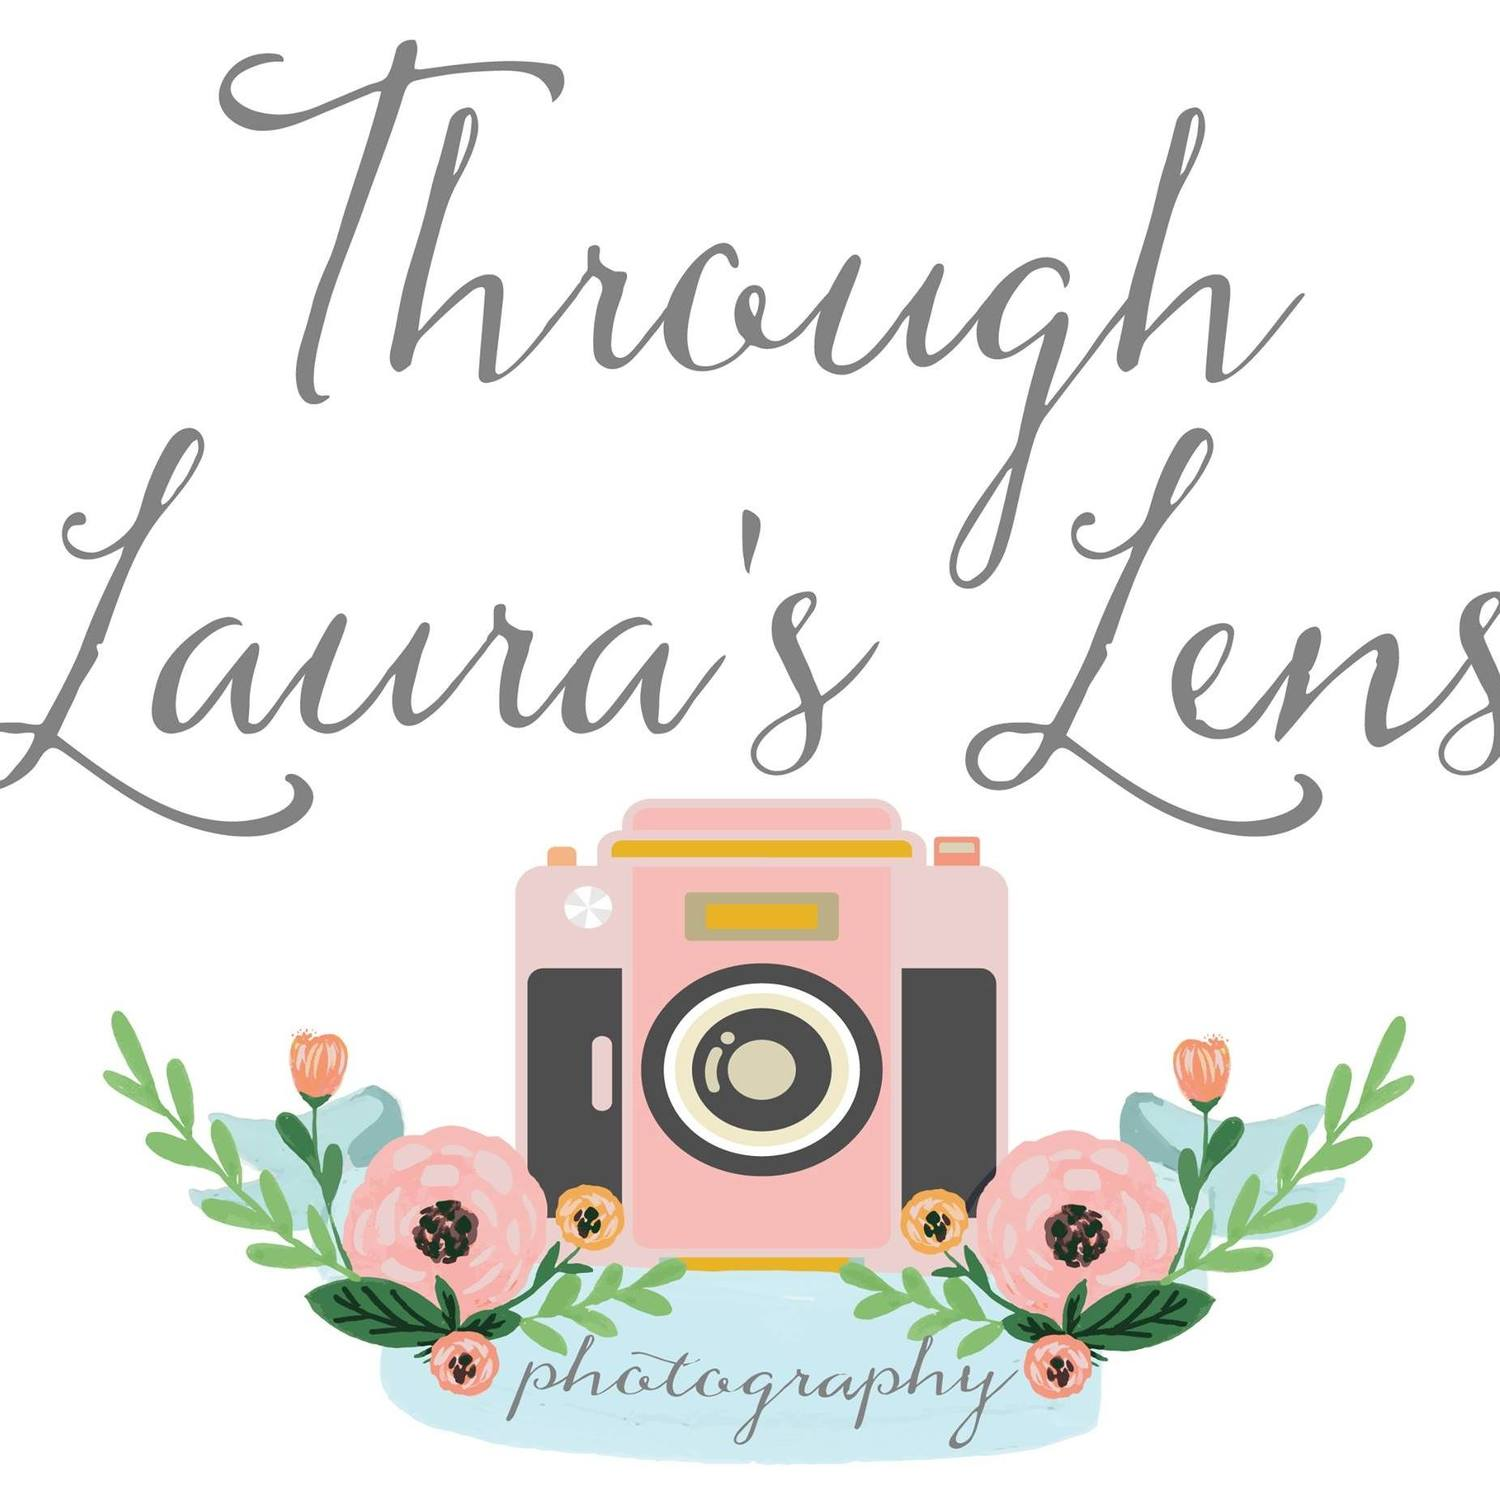 Through Laura's Lens Photography